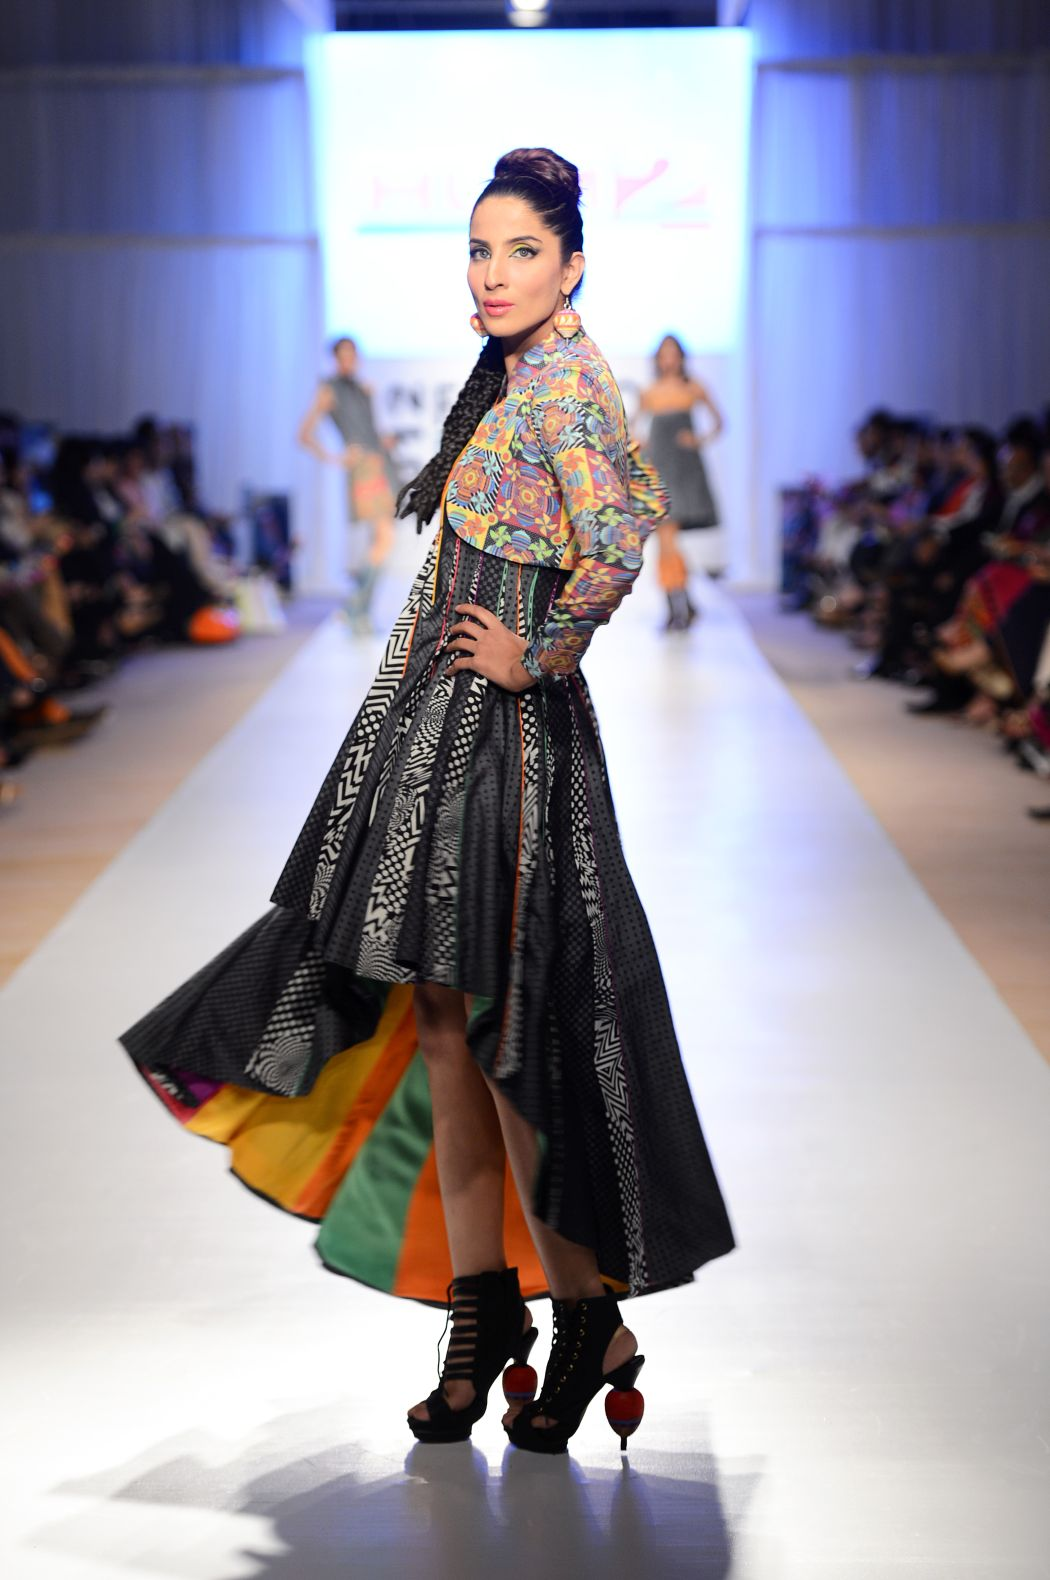 Wardha Saleem Collection from day 1 of FPW 4 2012